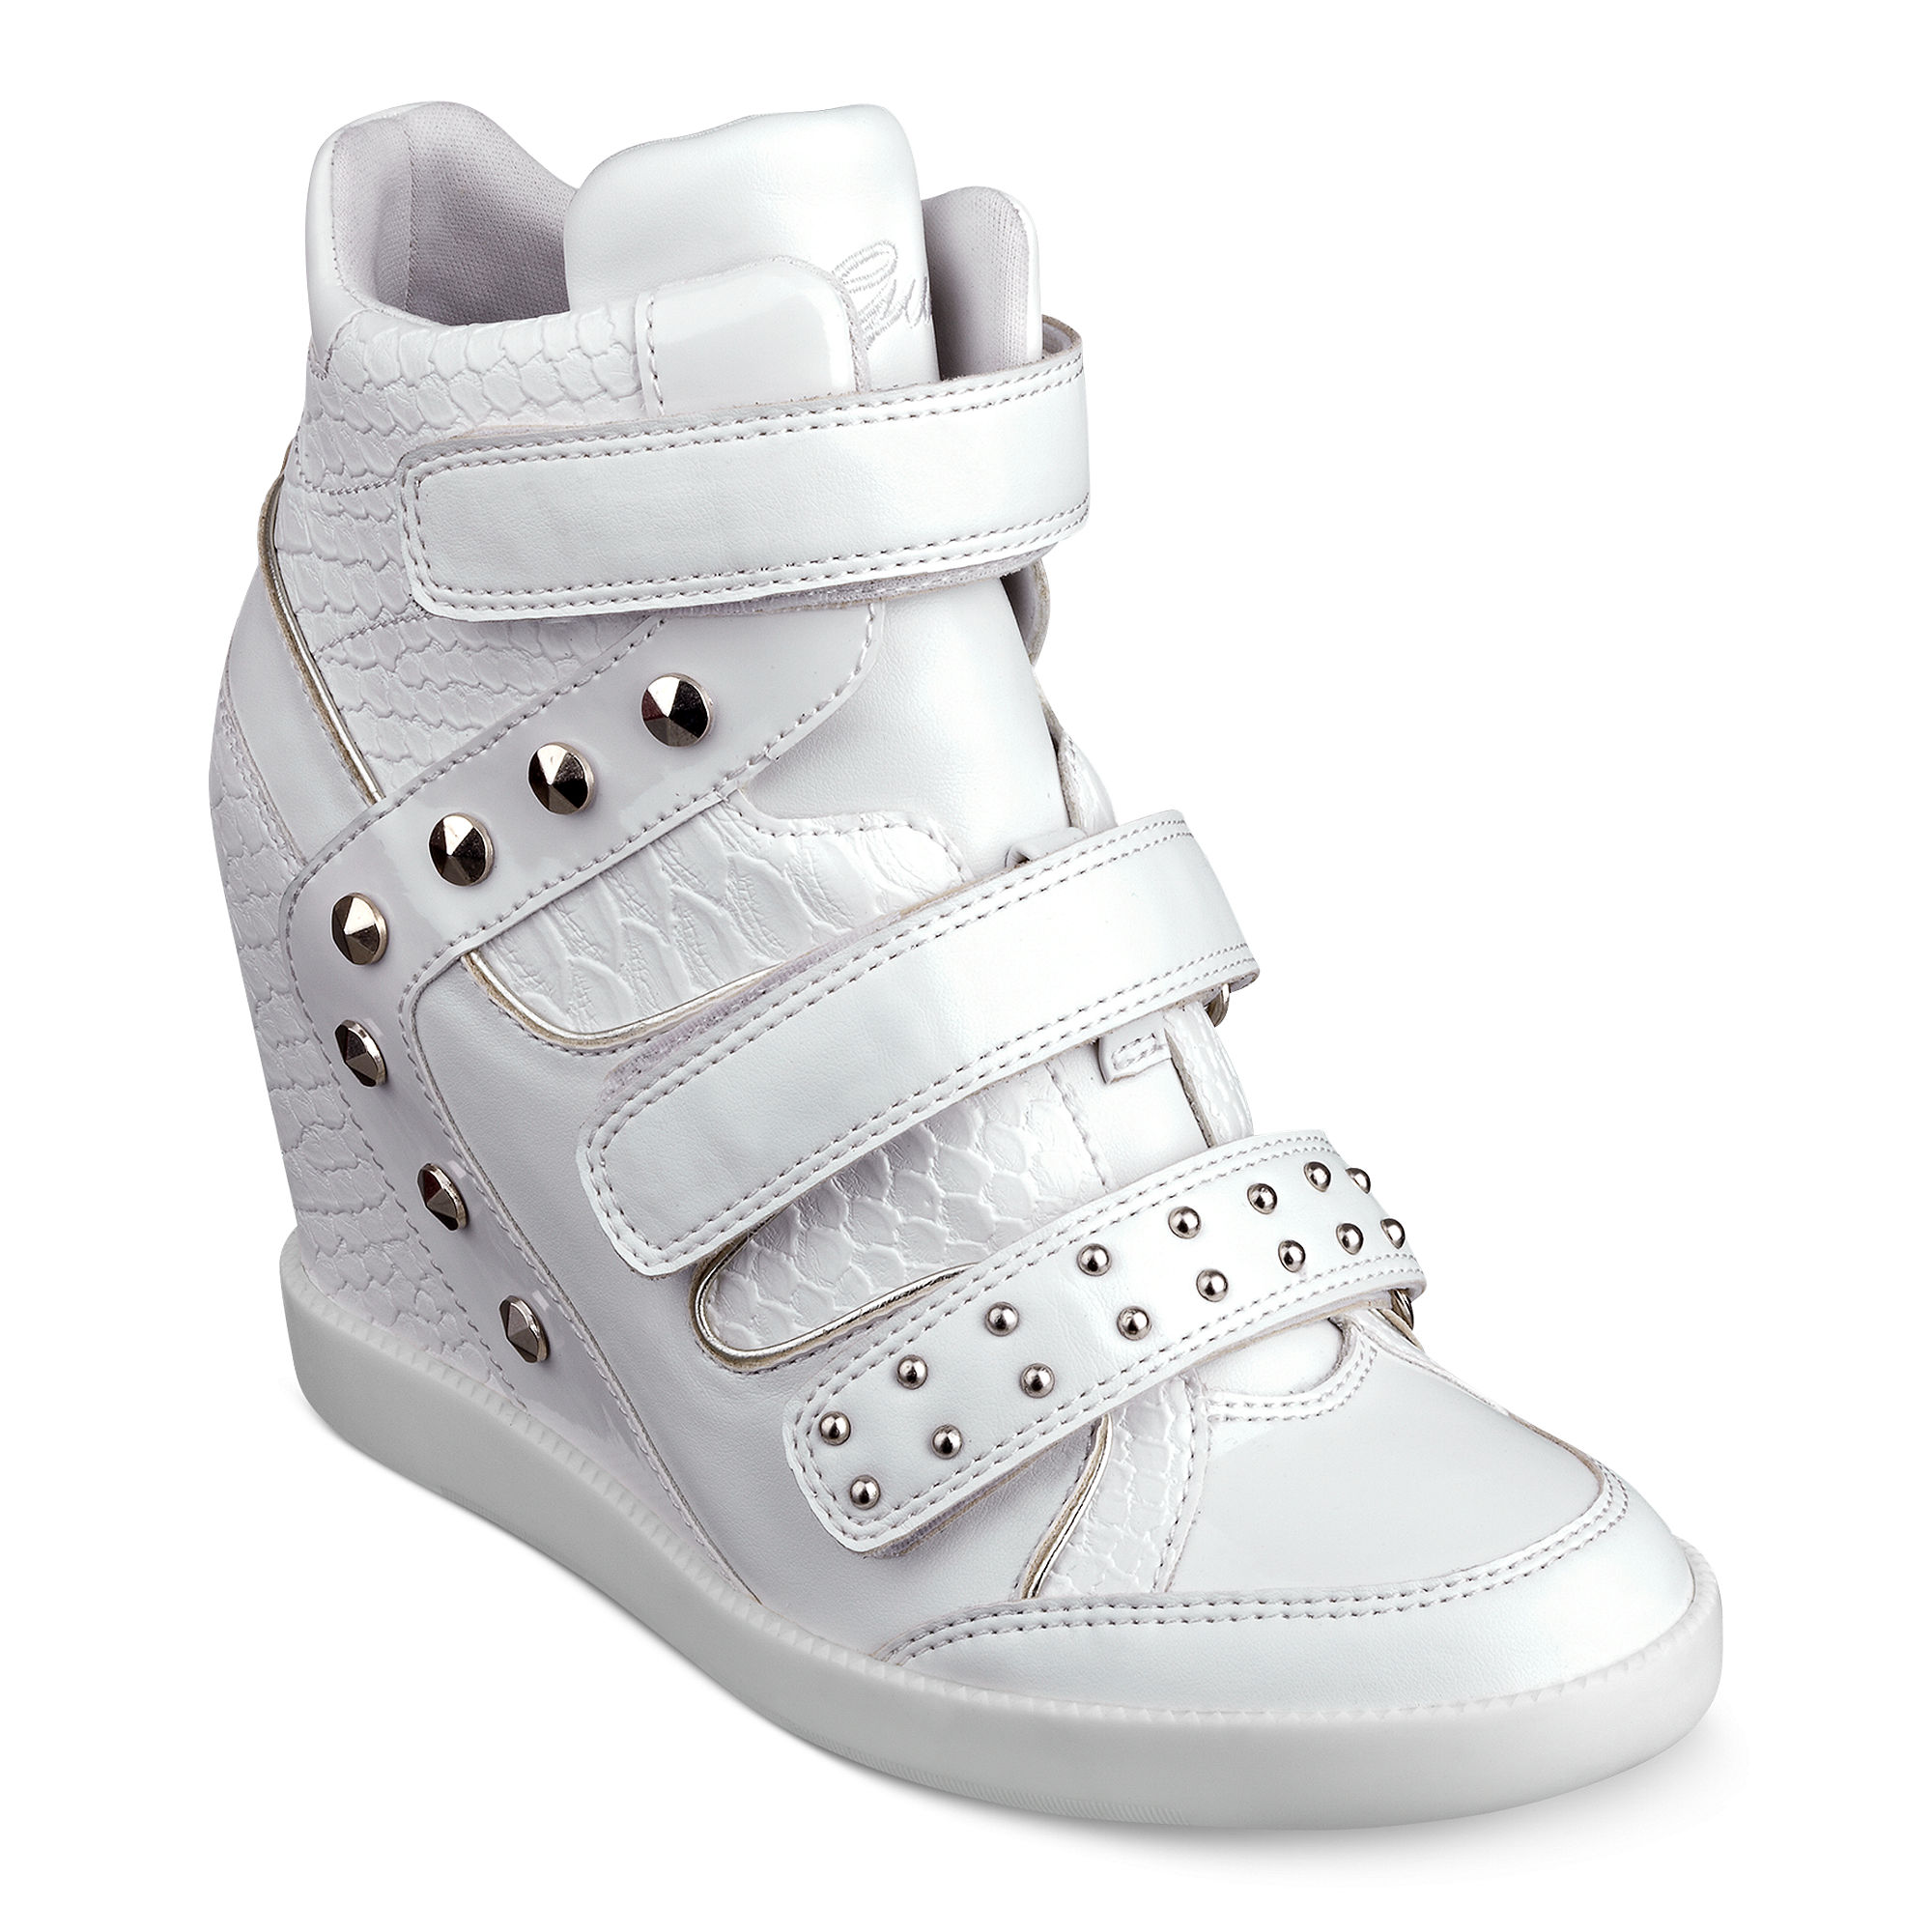 3fa439b0360 Lyst - Guess Hisaben Wedge Sneakers in White